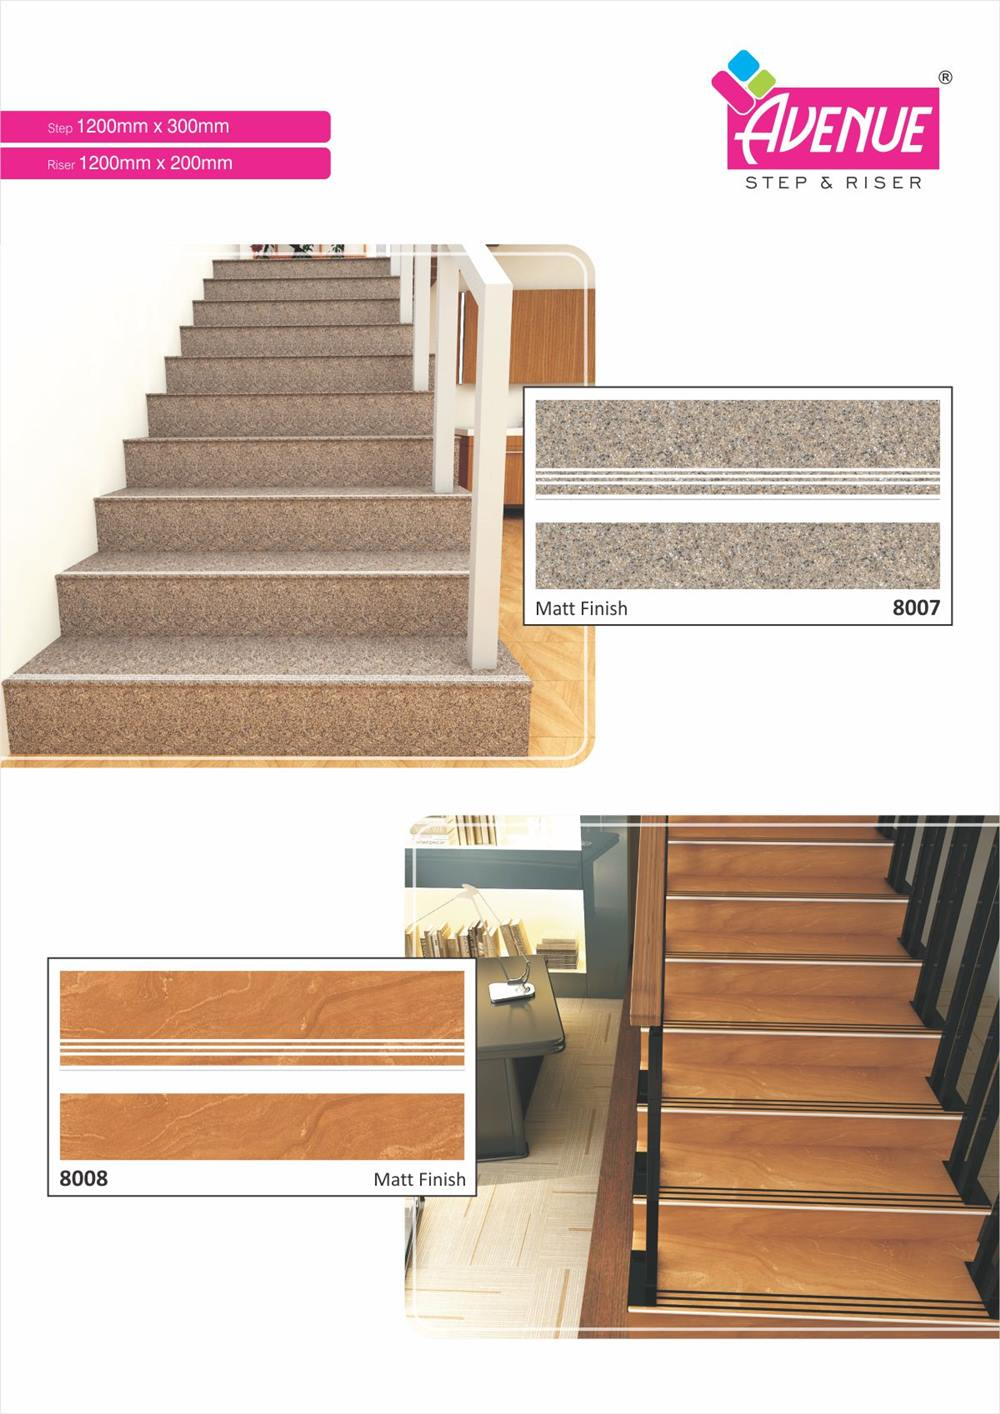 Digital Step & Riser Border Tiles Series with size, color